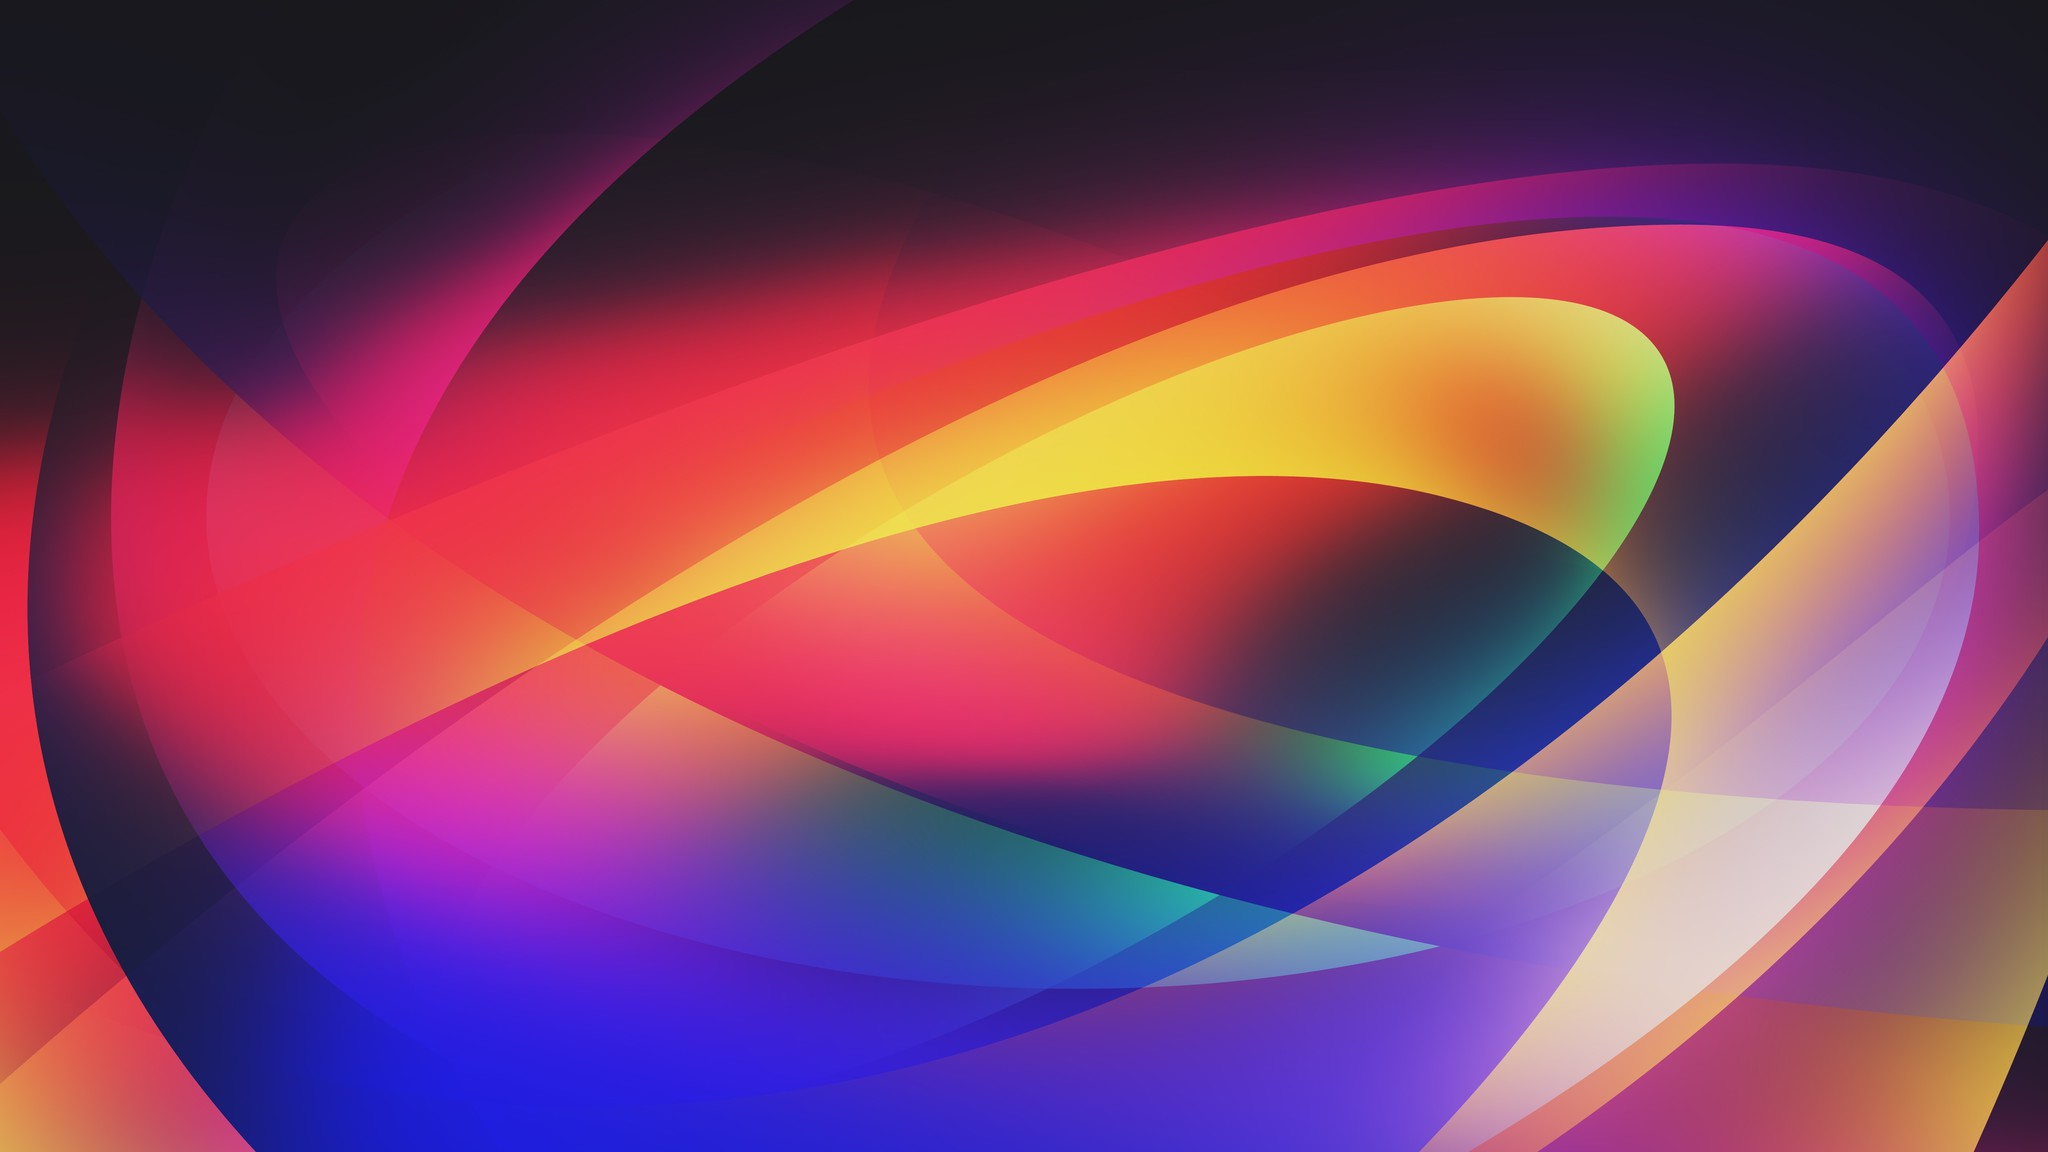 Abstract Colors Wallpaper Allwallpaper In 11122 Pc En HD Wallpapers Download Free Images Wallpaper [1000image.com]